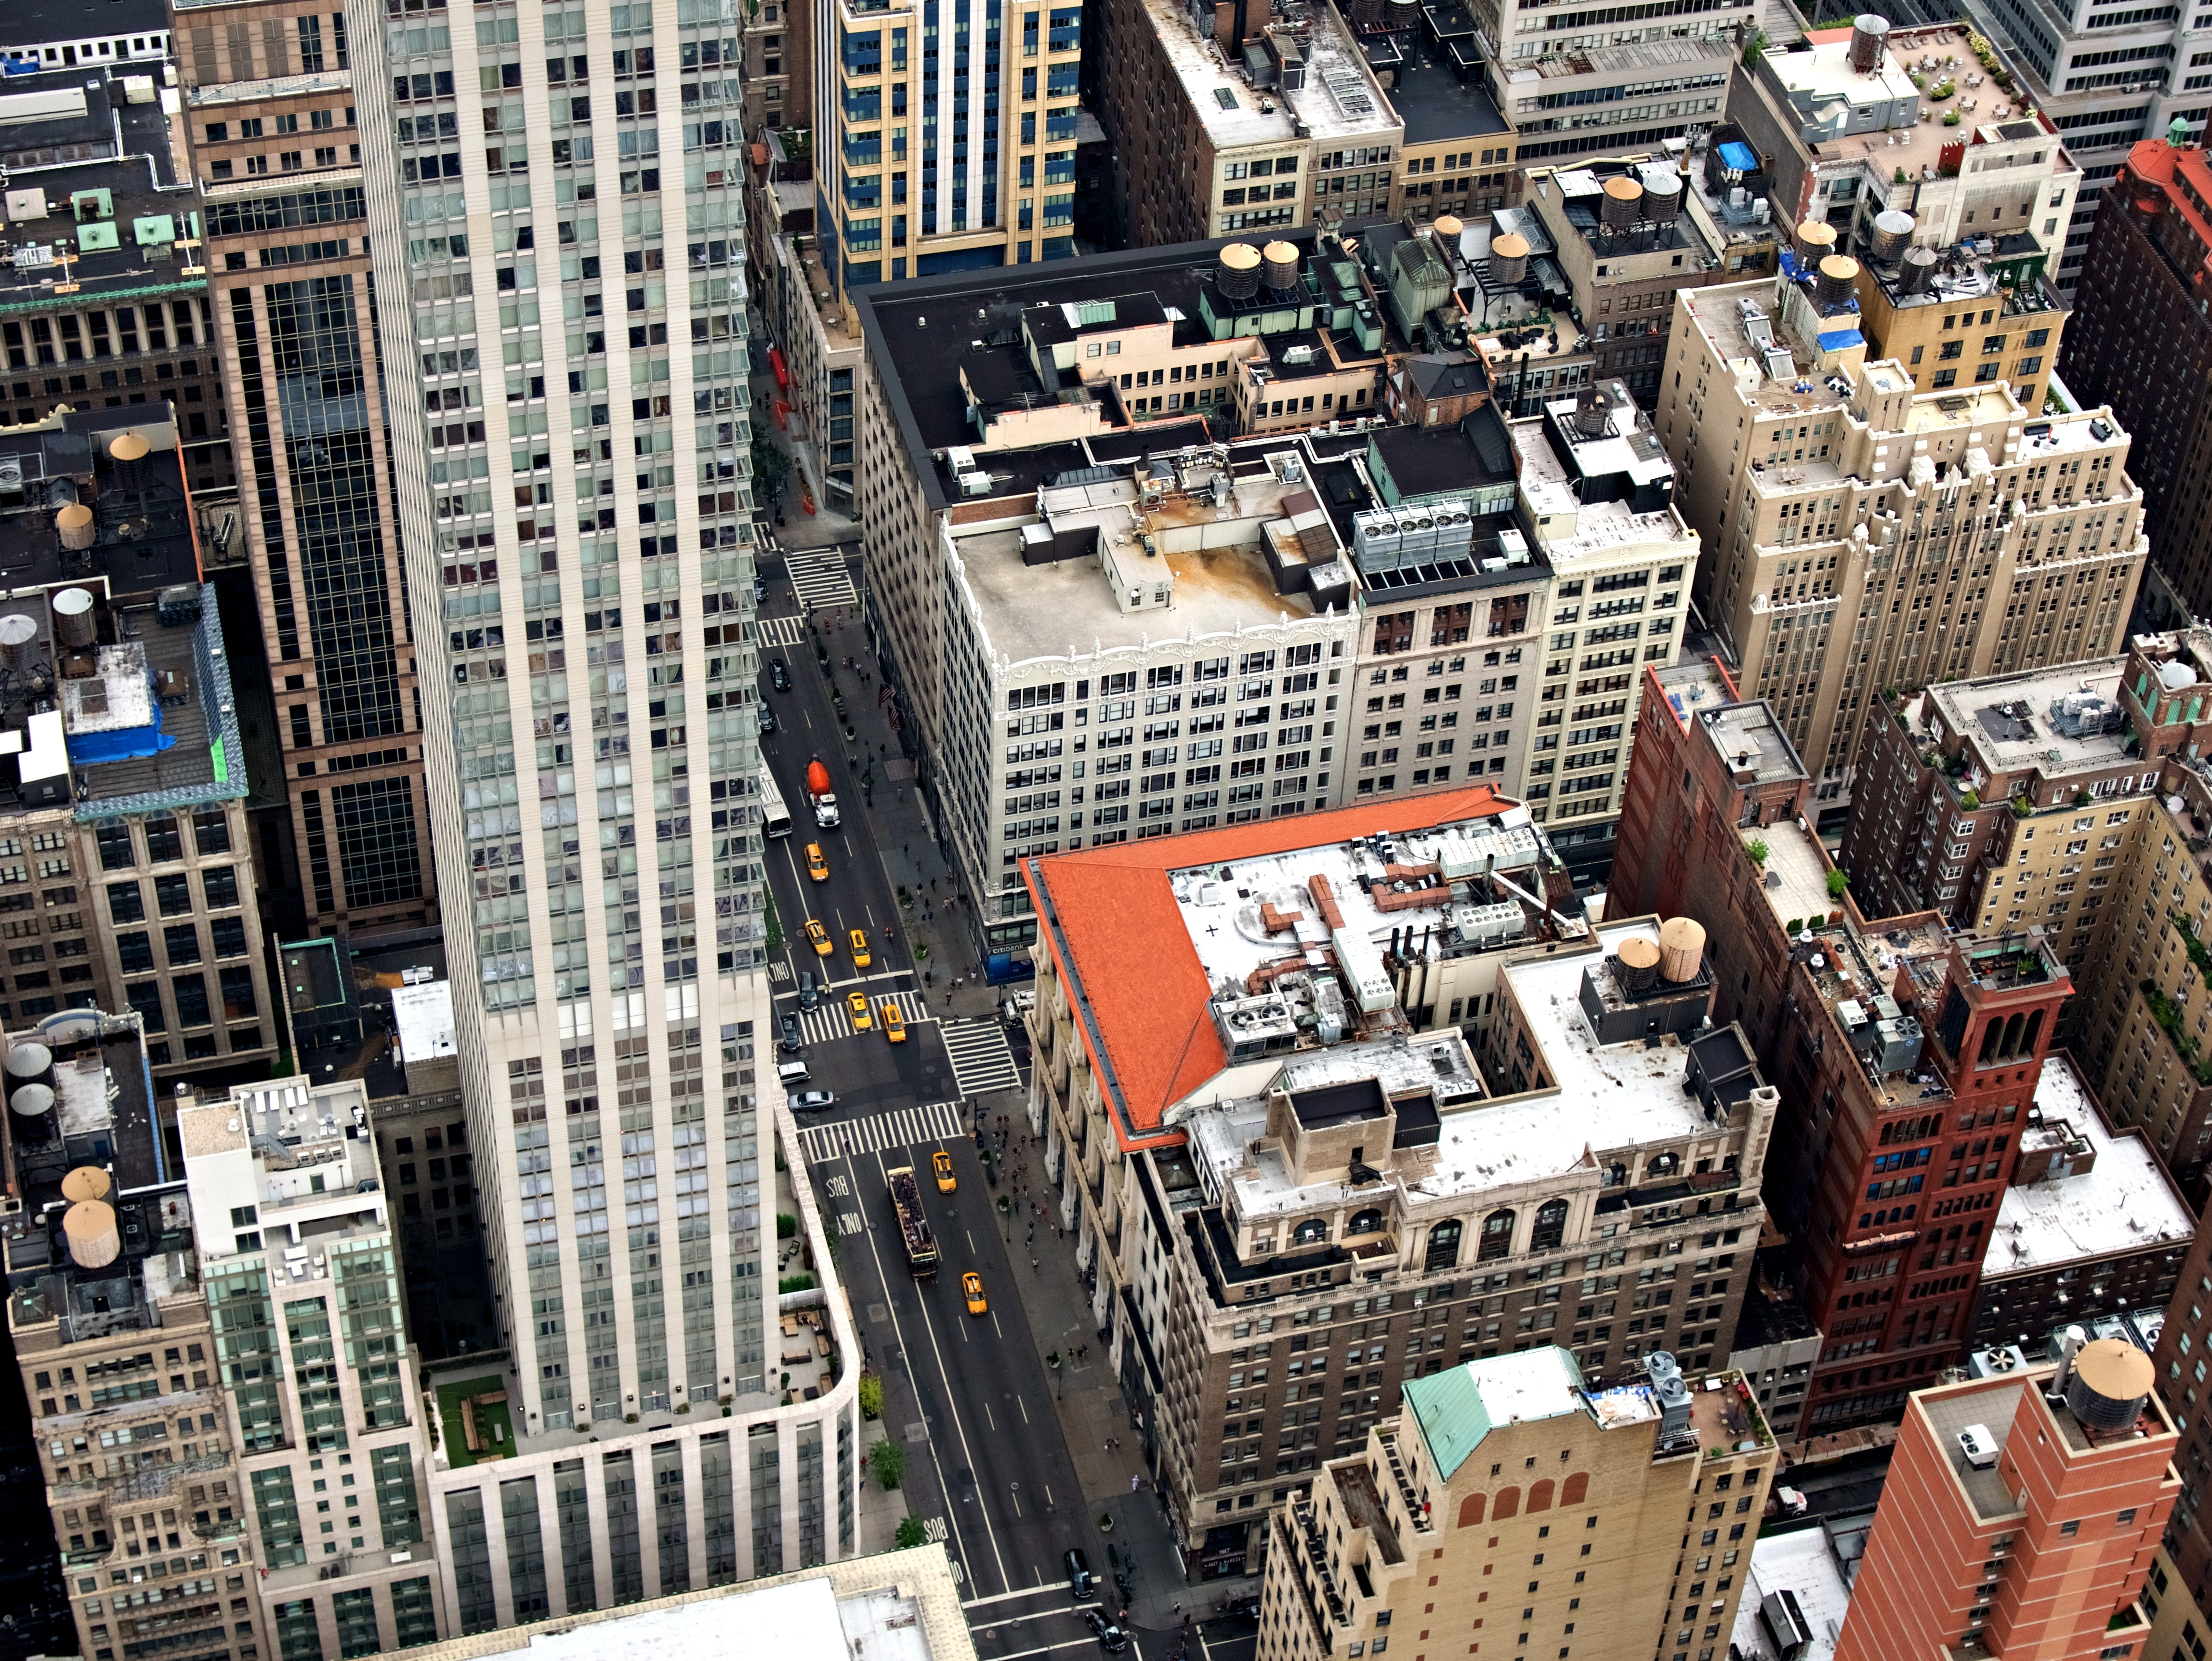 aerial view photography of buildings during daytime